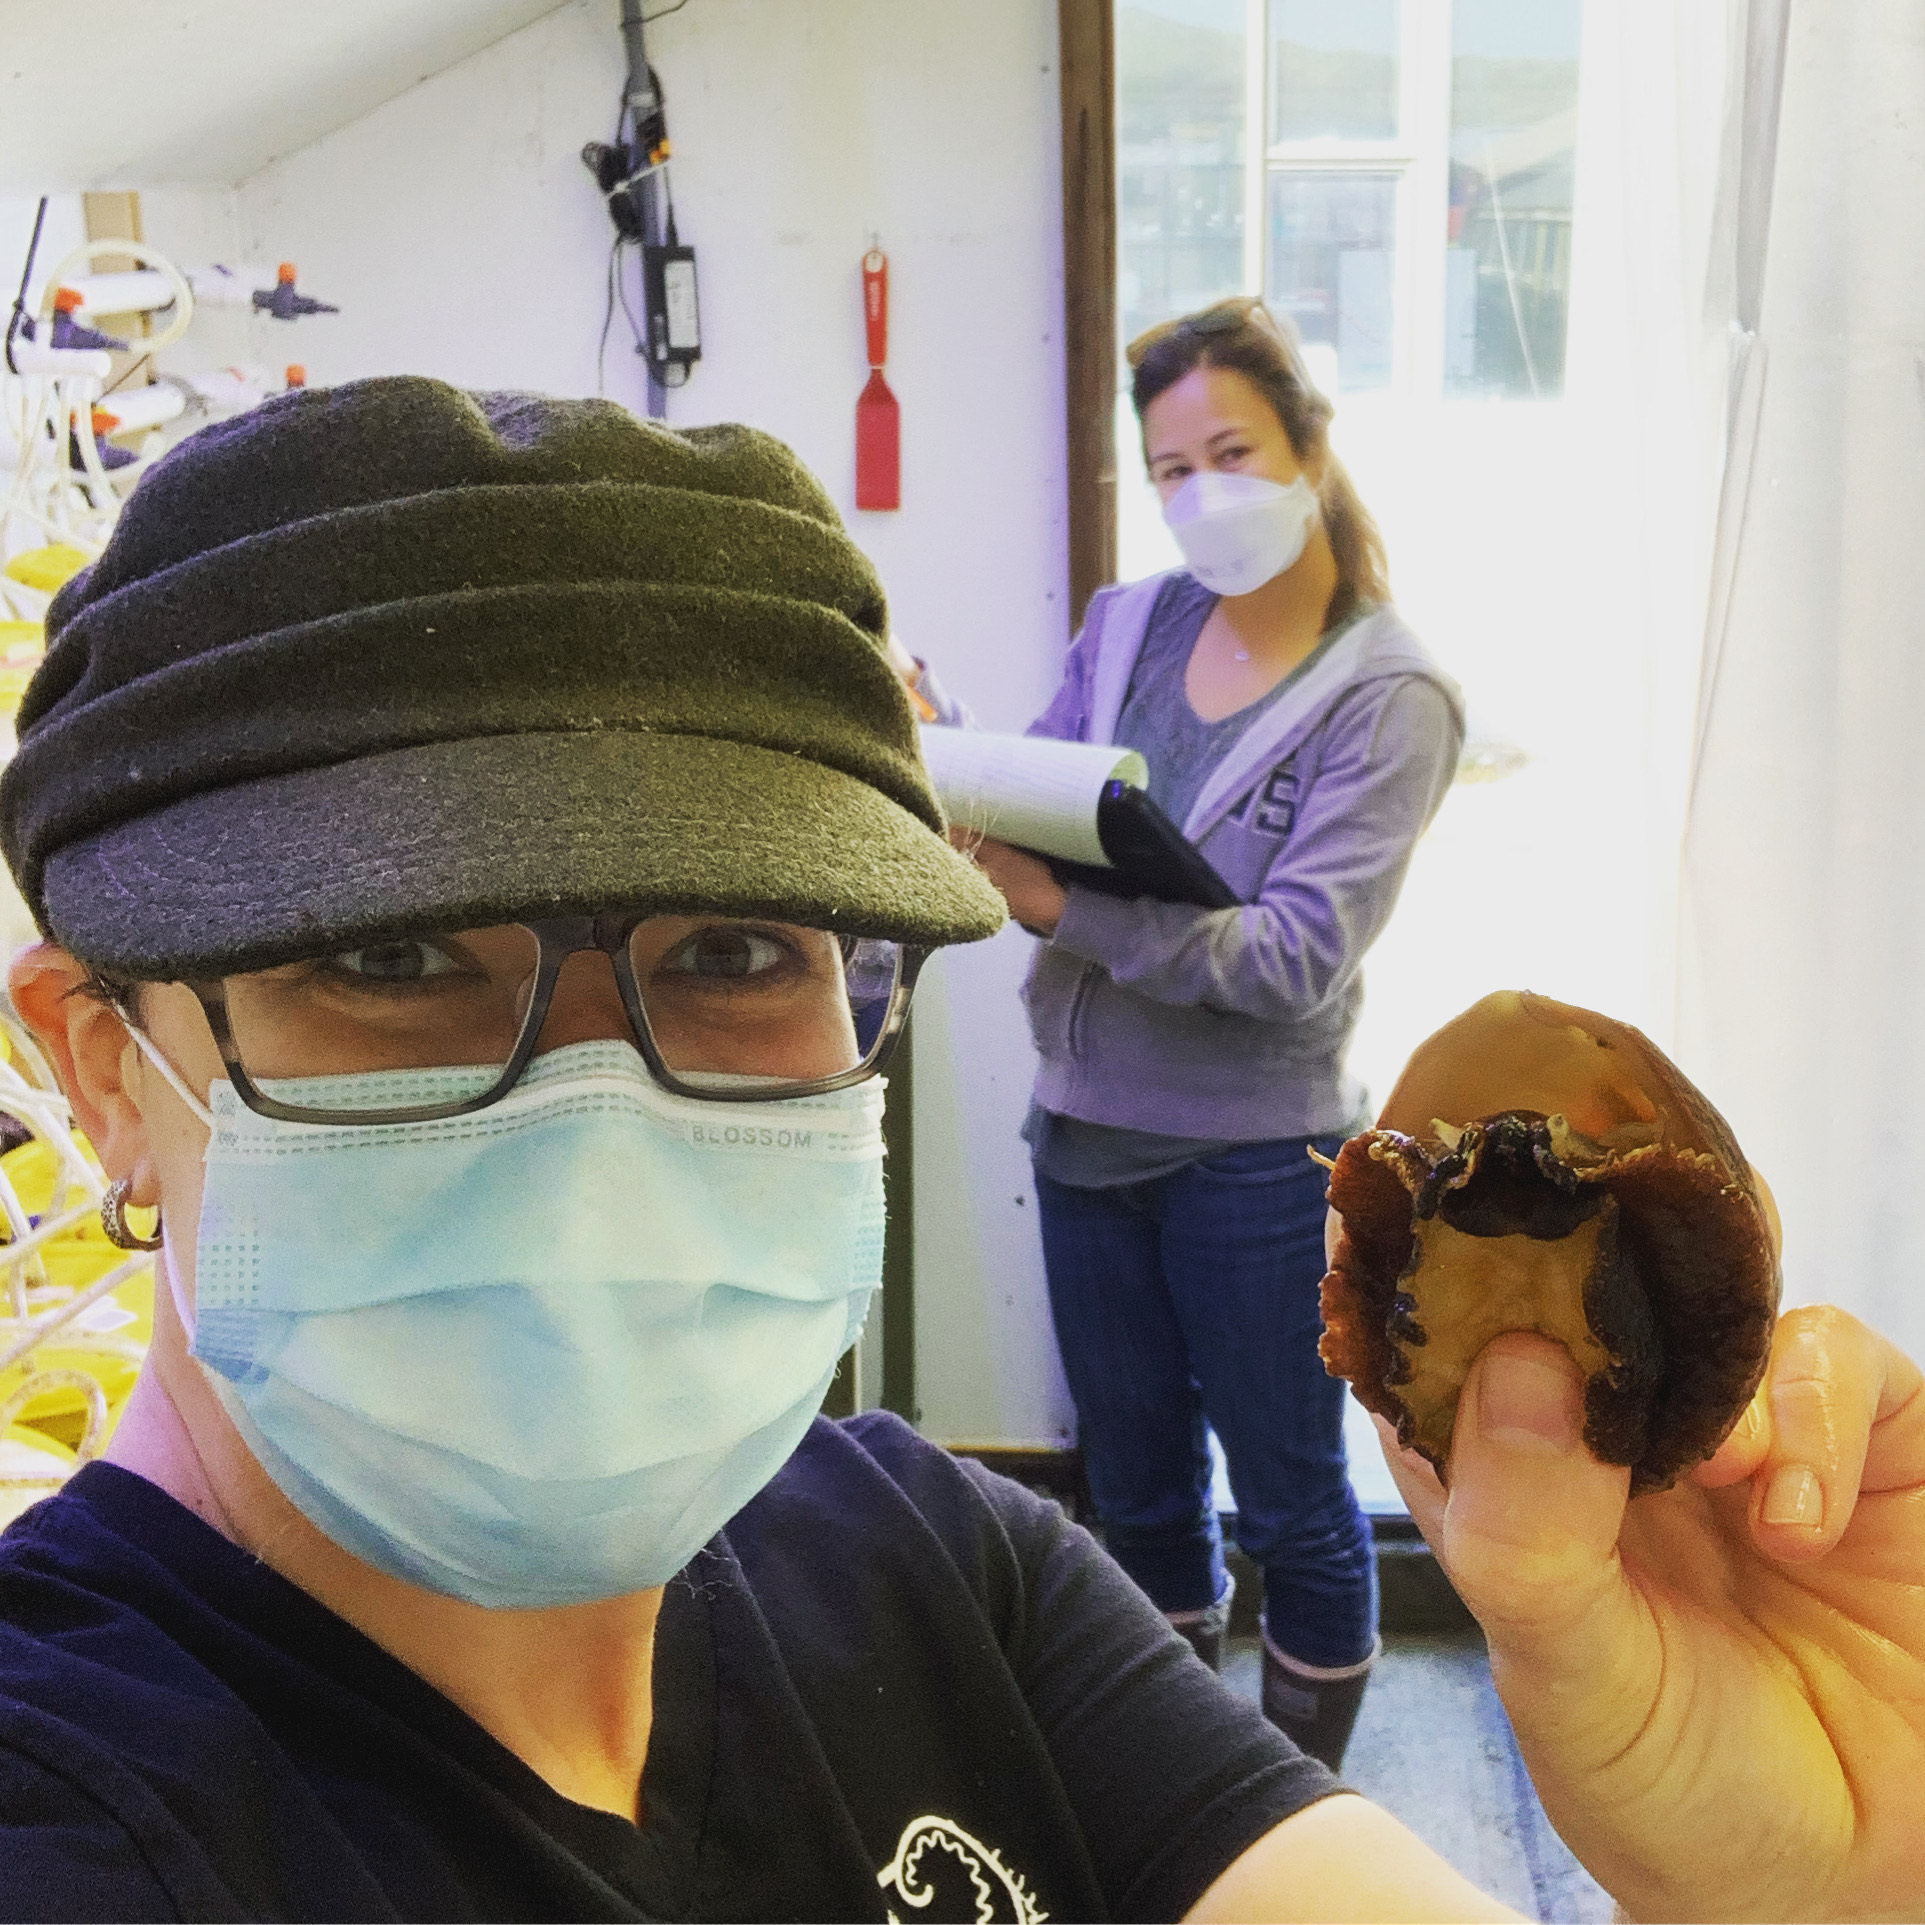 Kristin Aquilino and Shelby Kawana measure white abalone in a CA Sea Grant-funded project